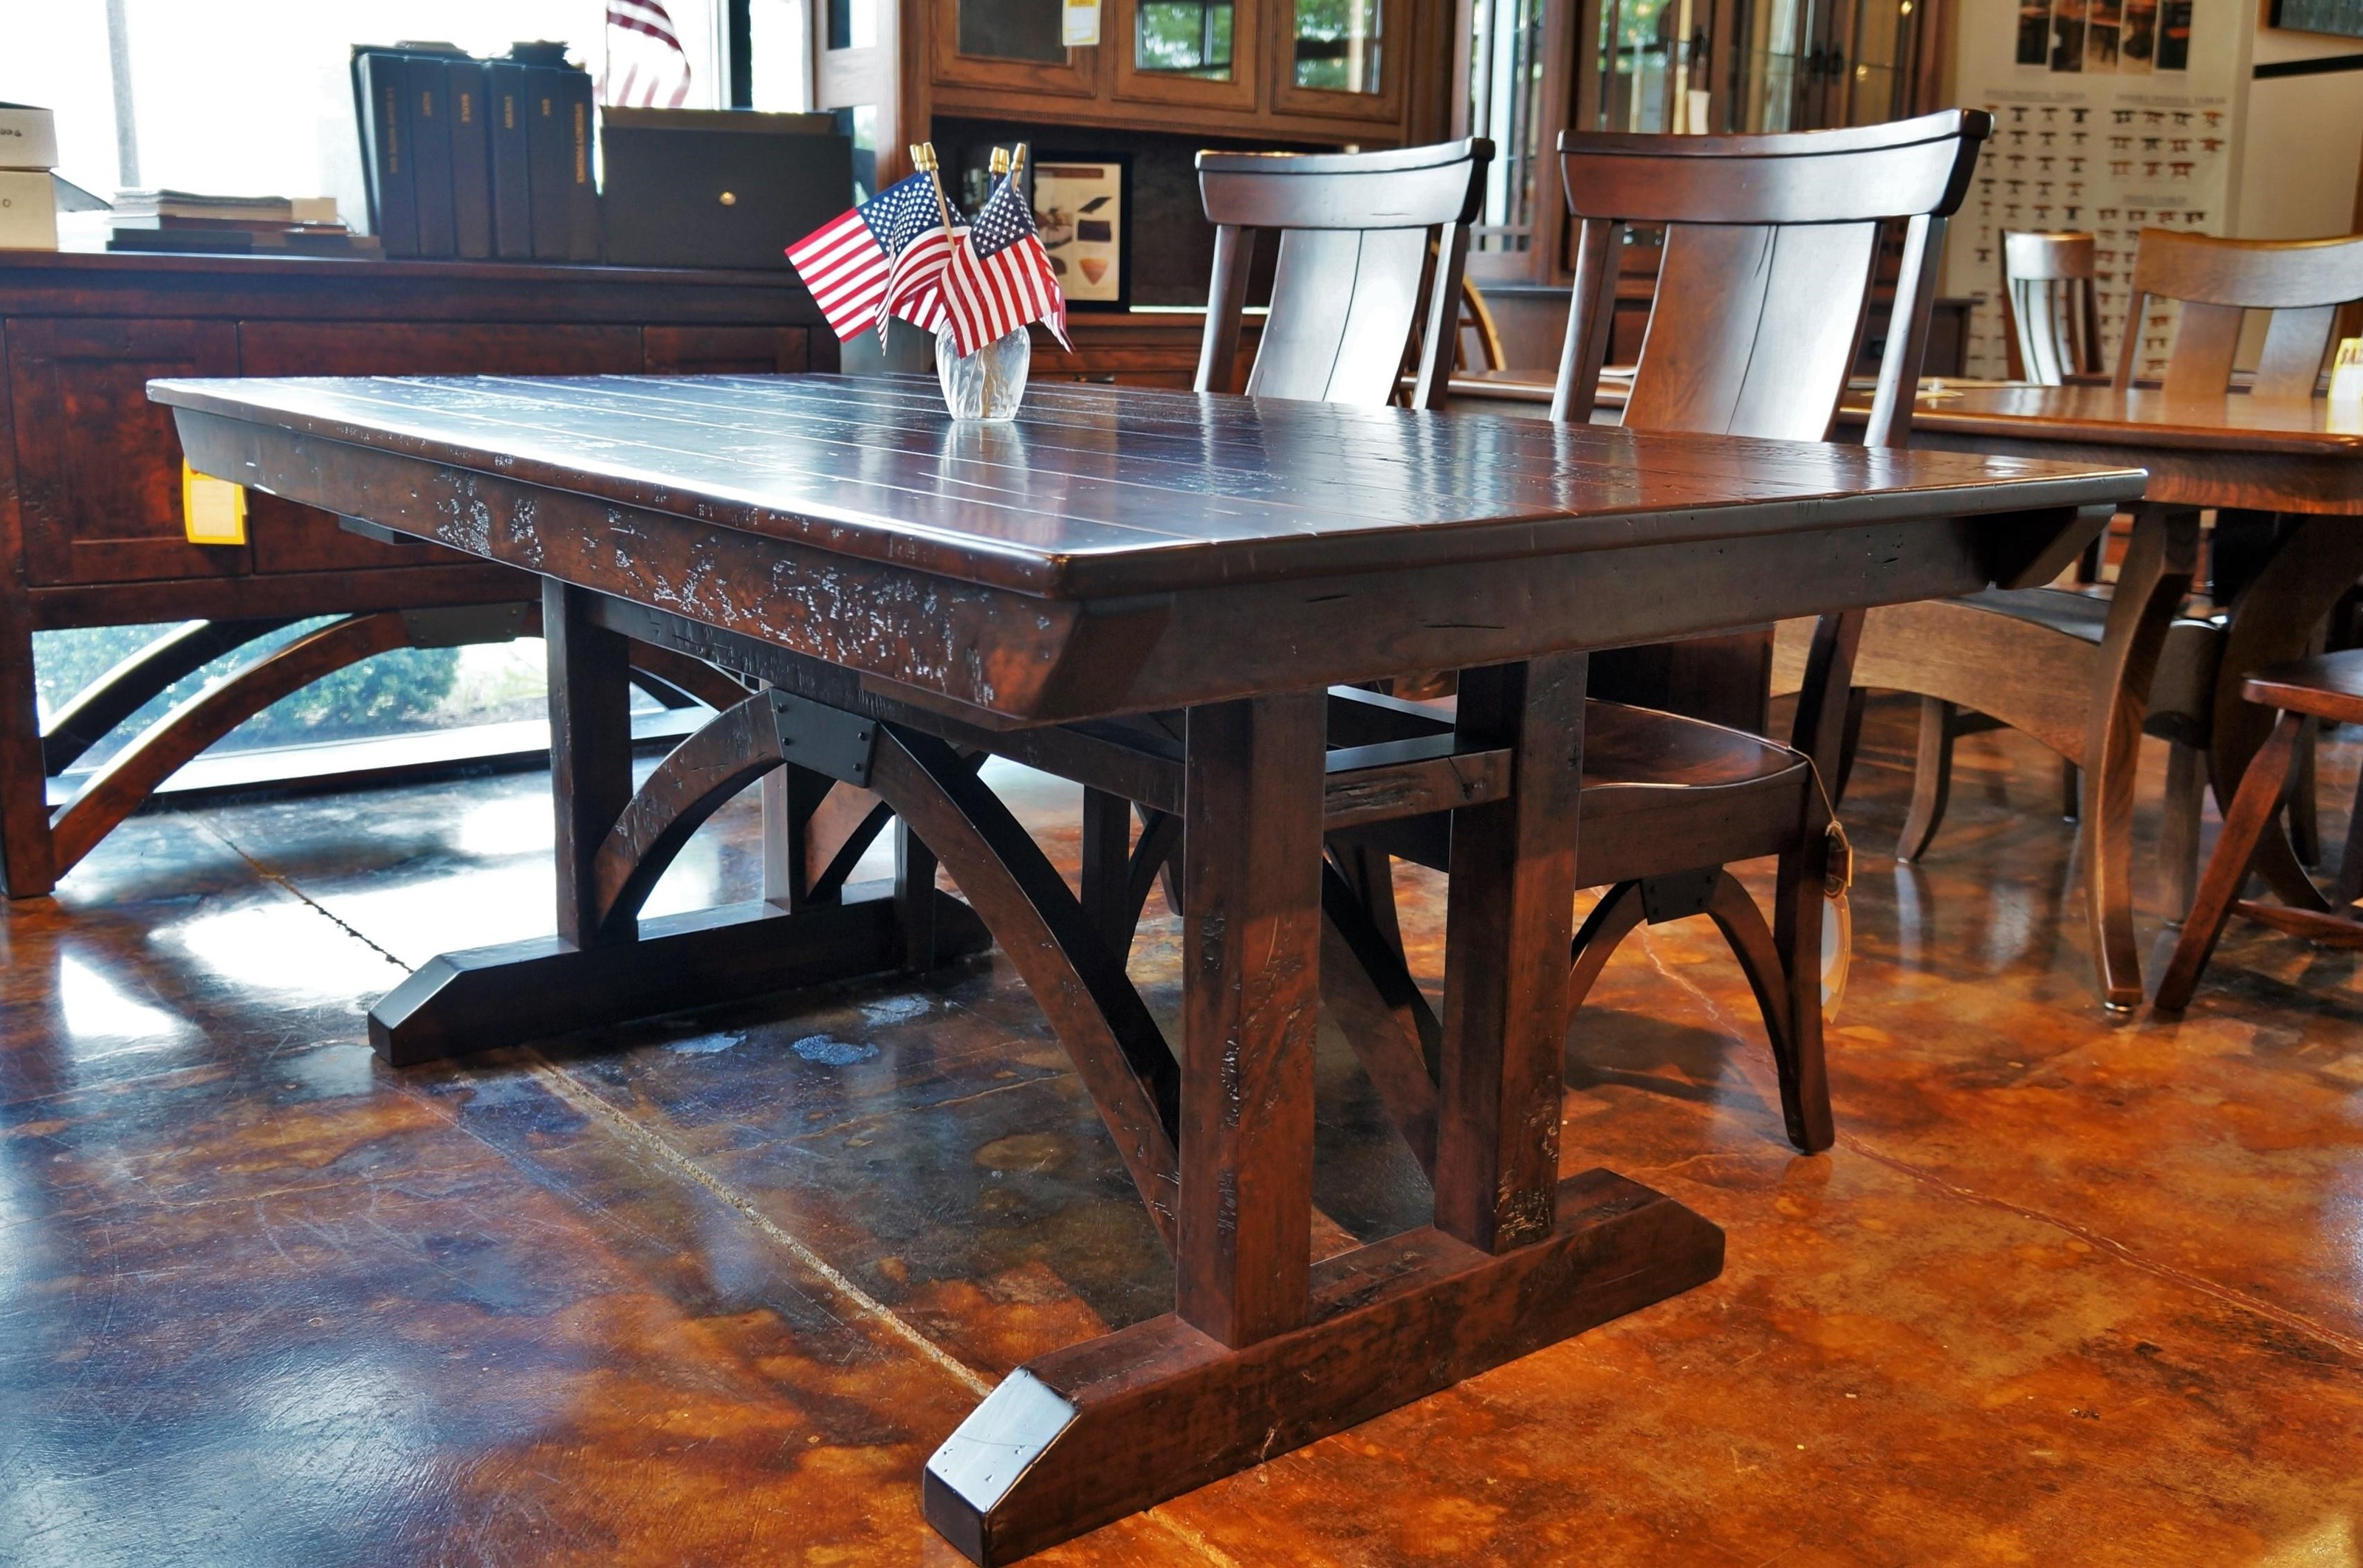 B and O Railroad Trestle Bridge Trestle Table by Simply Amish at Mueller Furniture